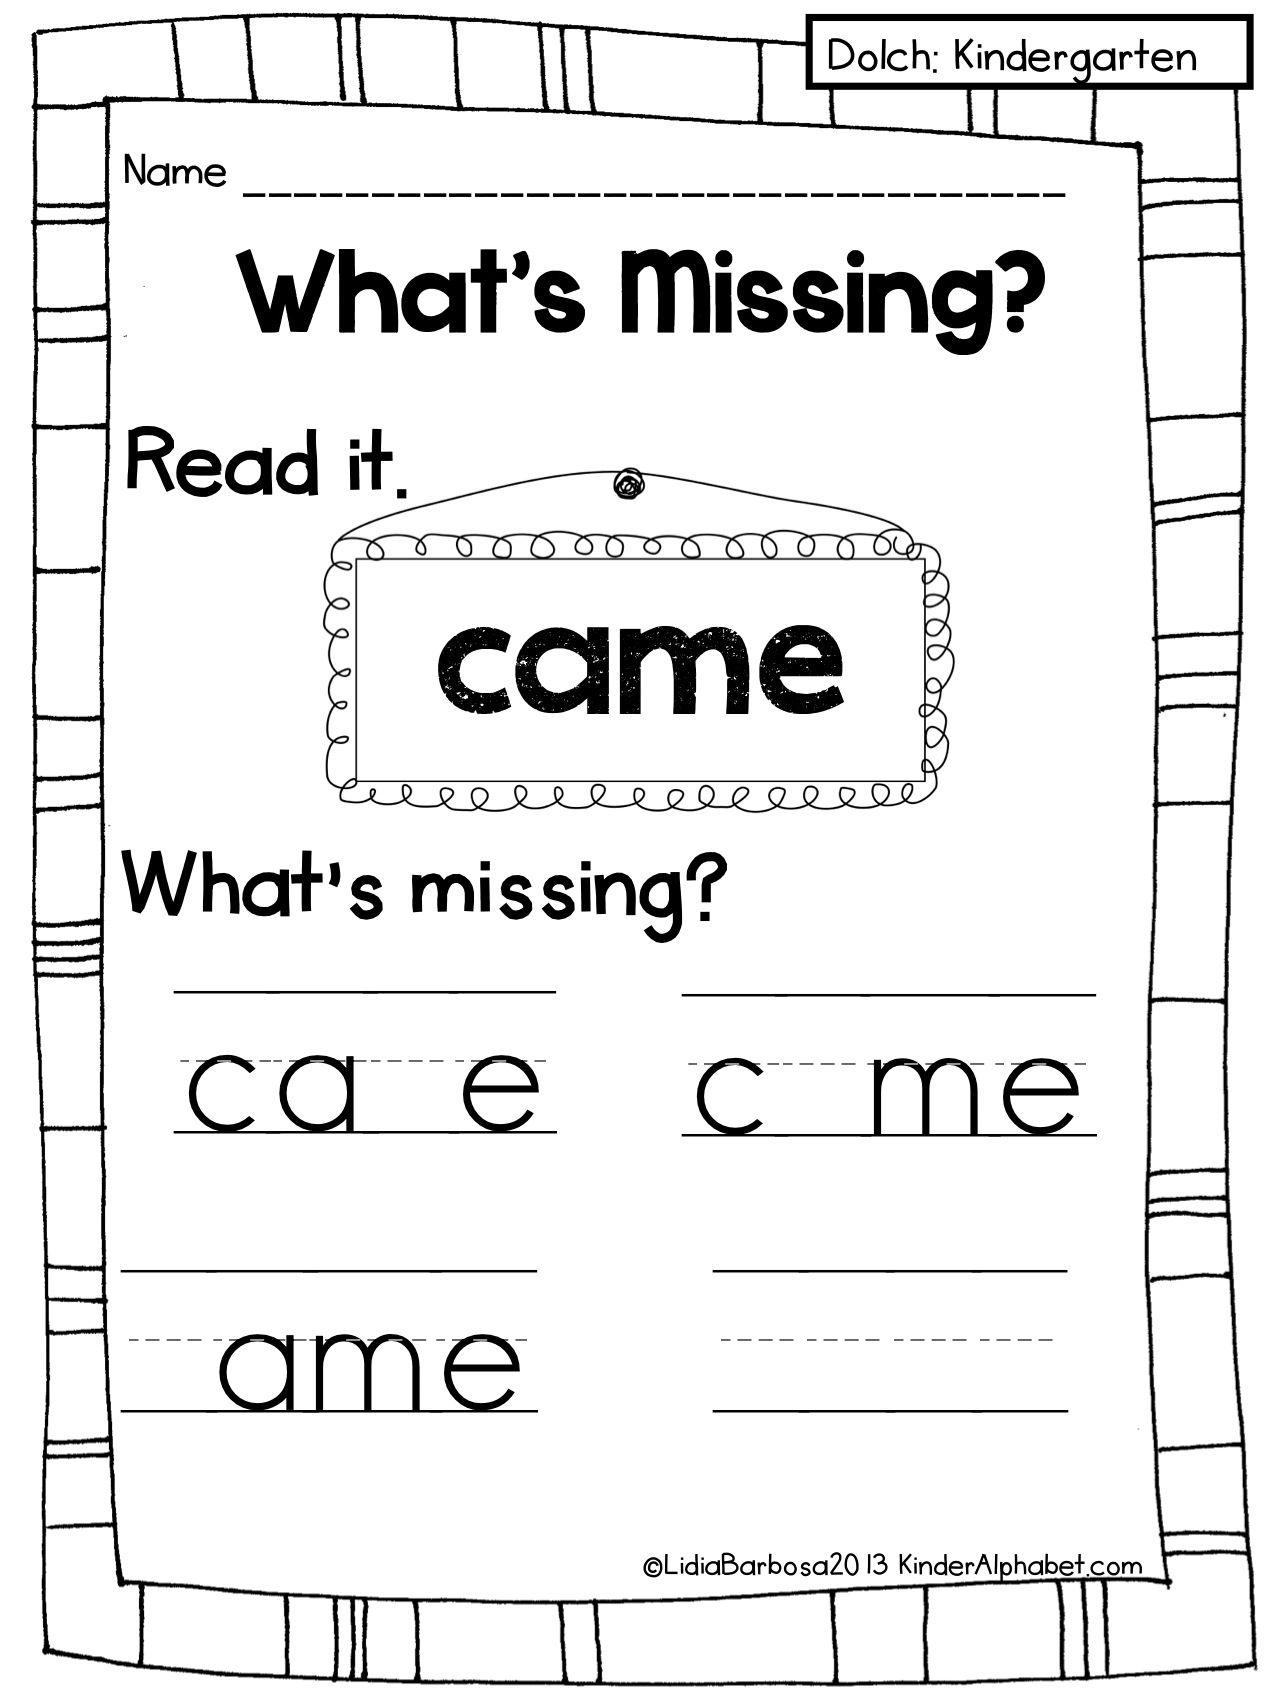 Sight Word Activities To Improve Visual Memory I Want To